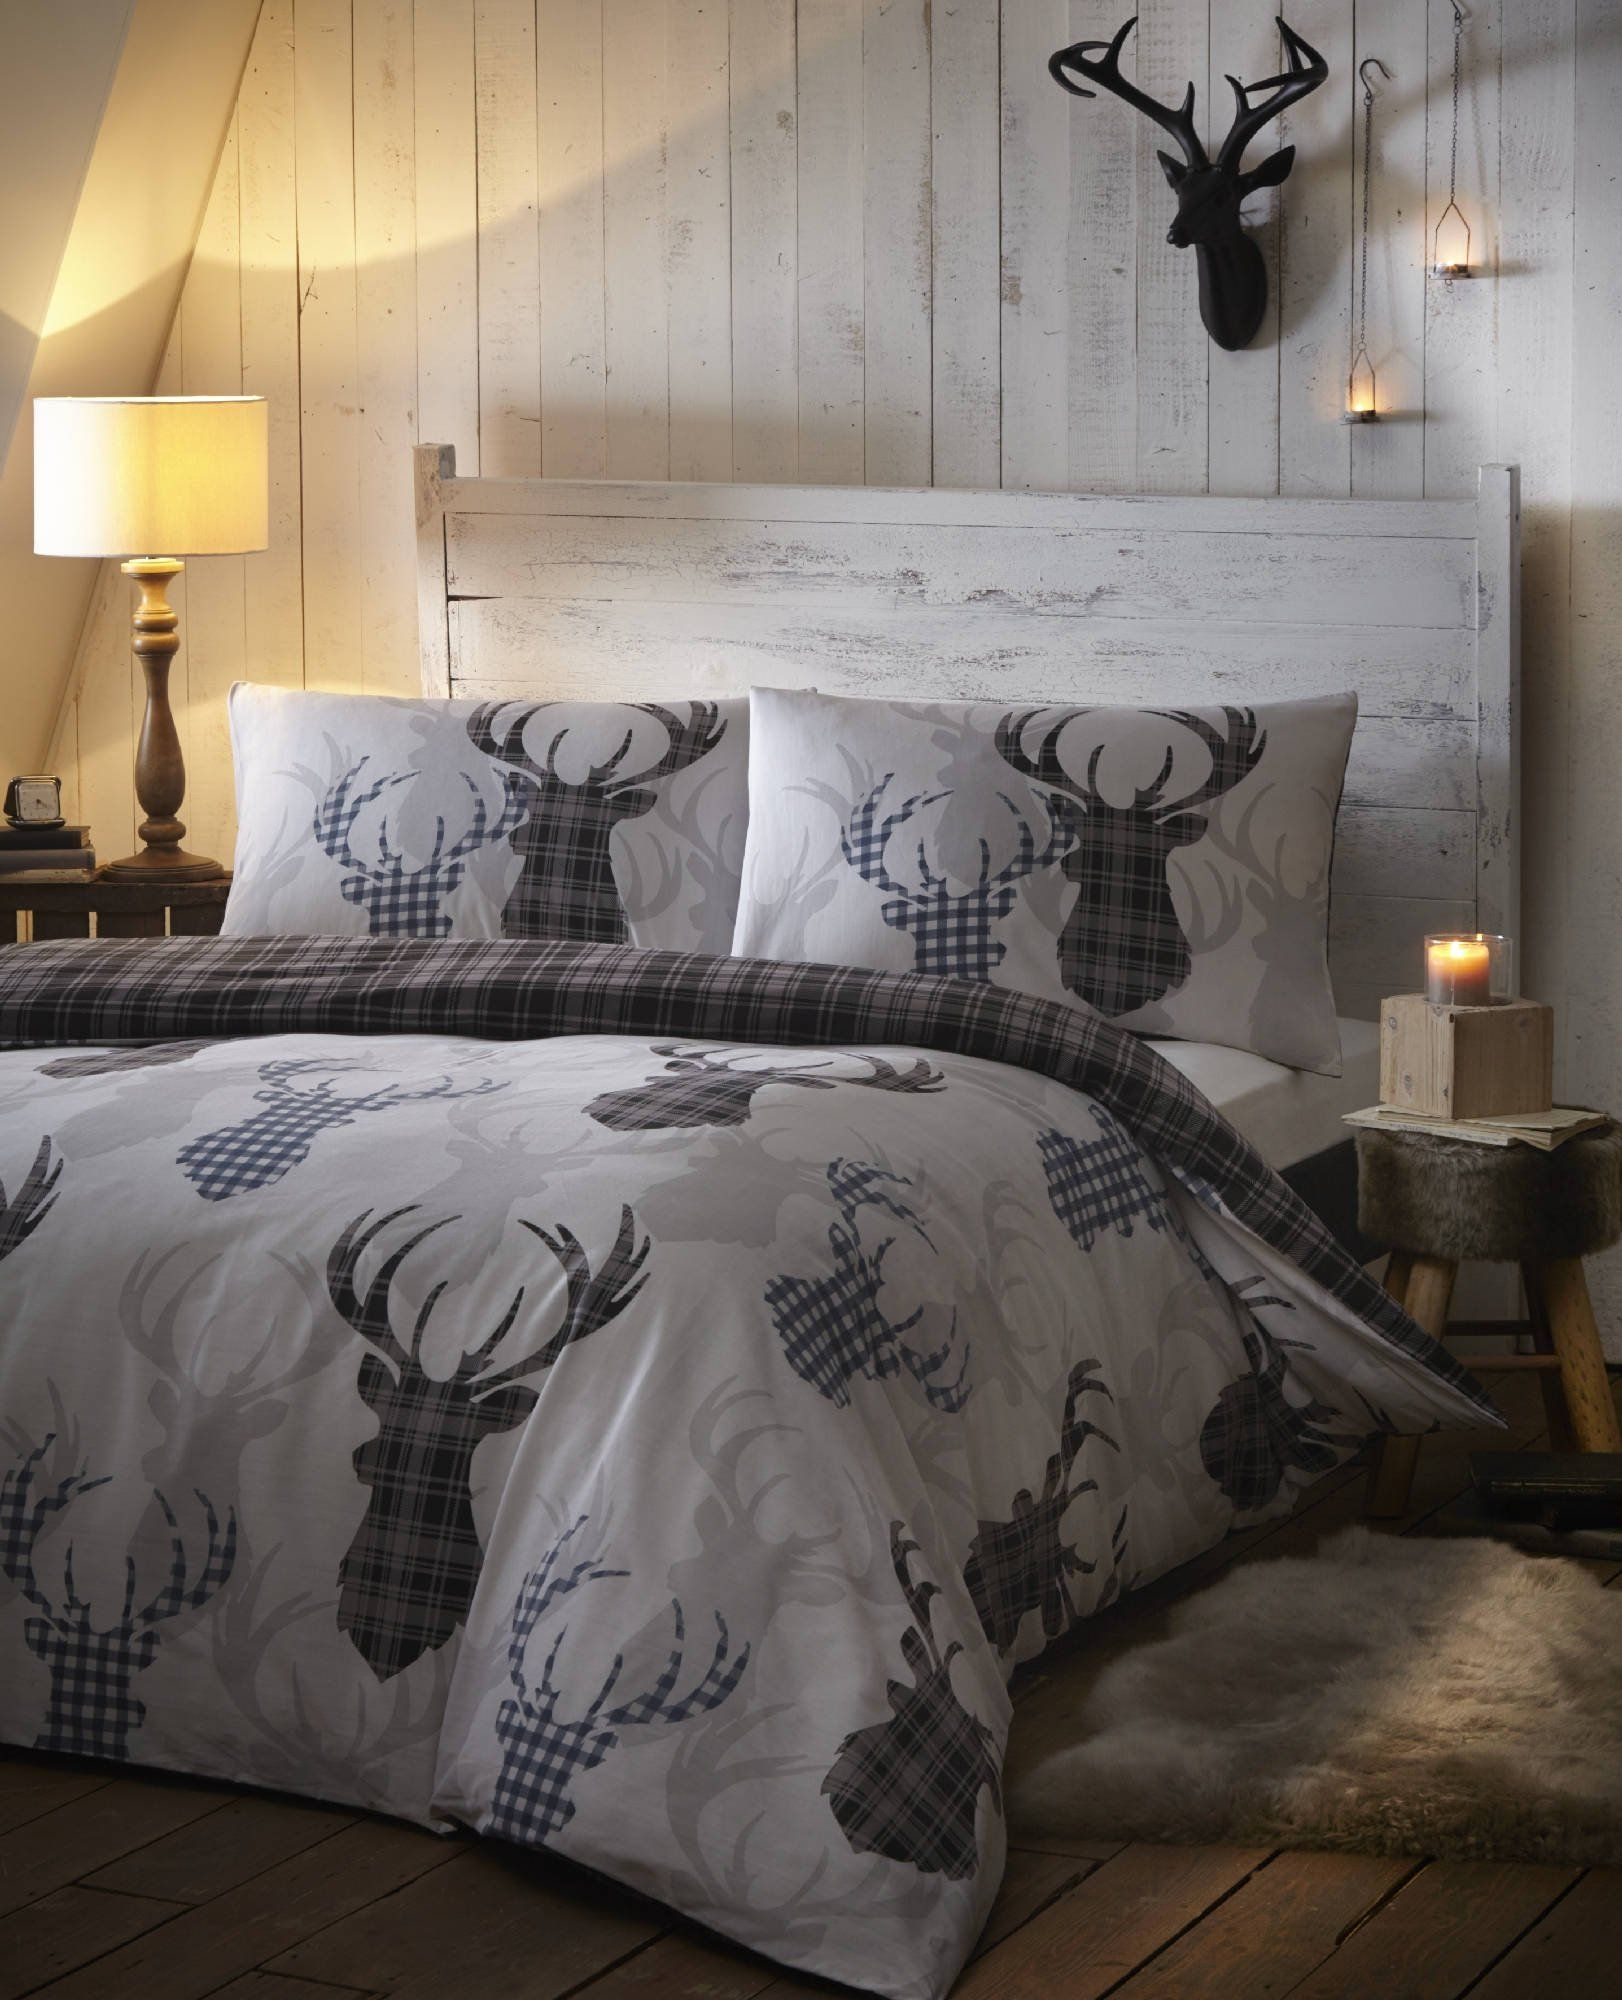 Tartan Check Stag Rein Deer Duvet Quilt Cover Double Bedding Bed Set